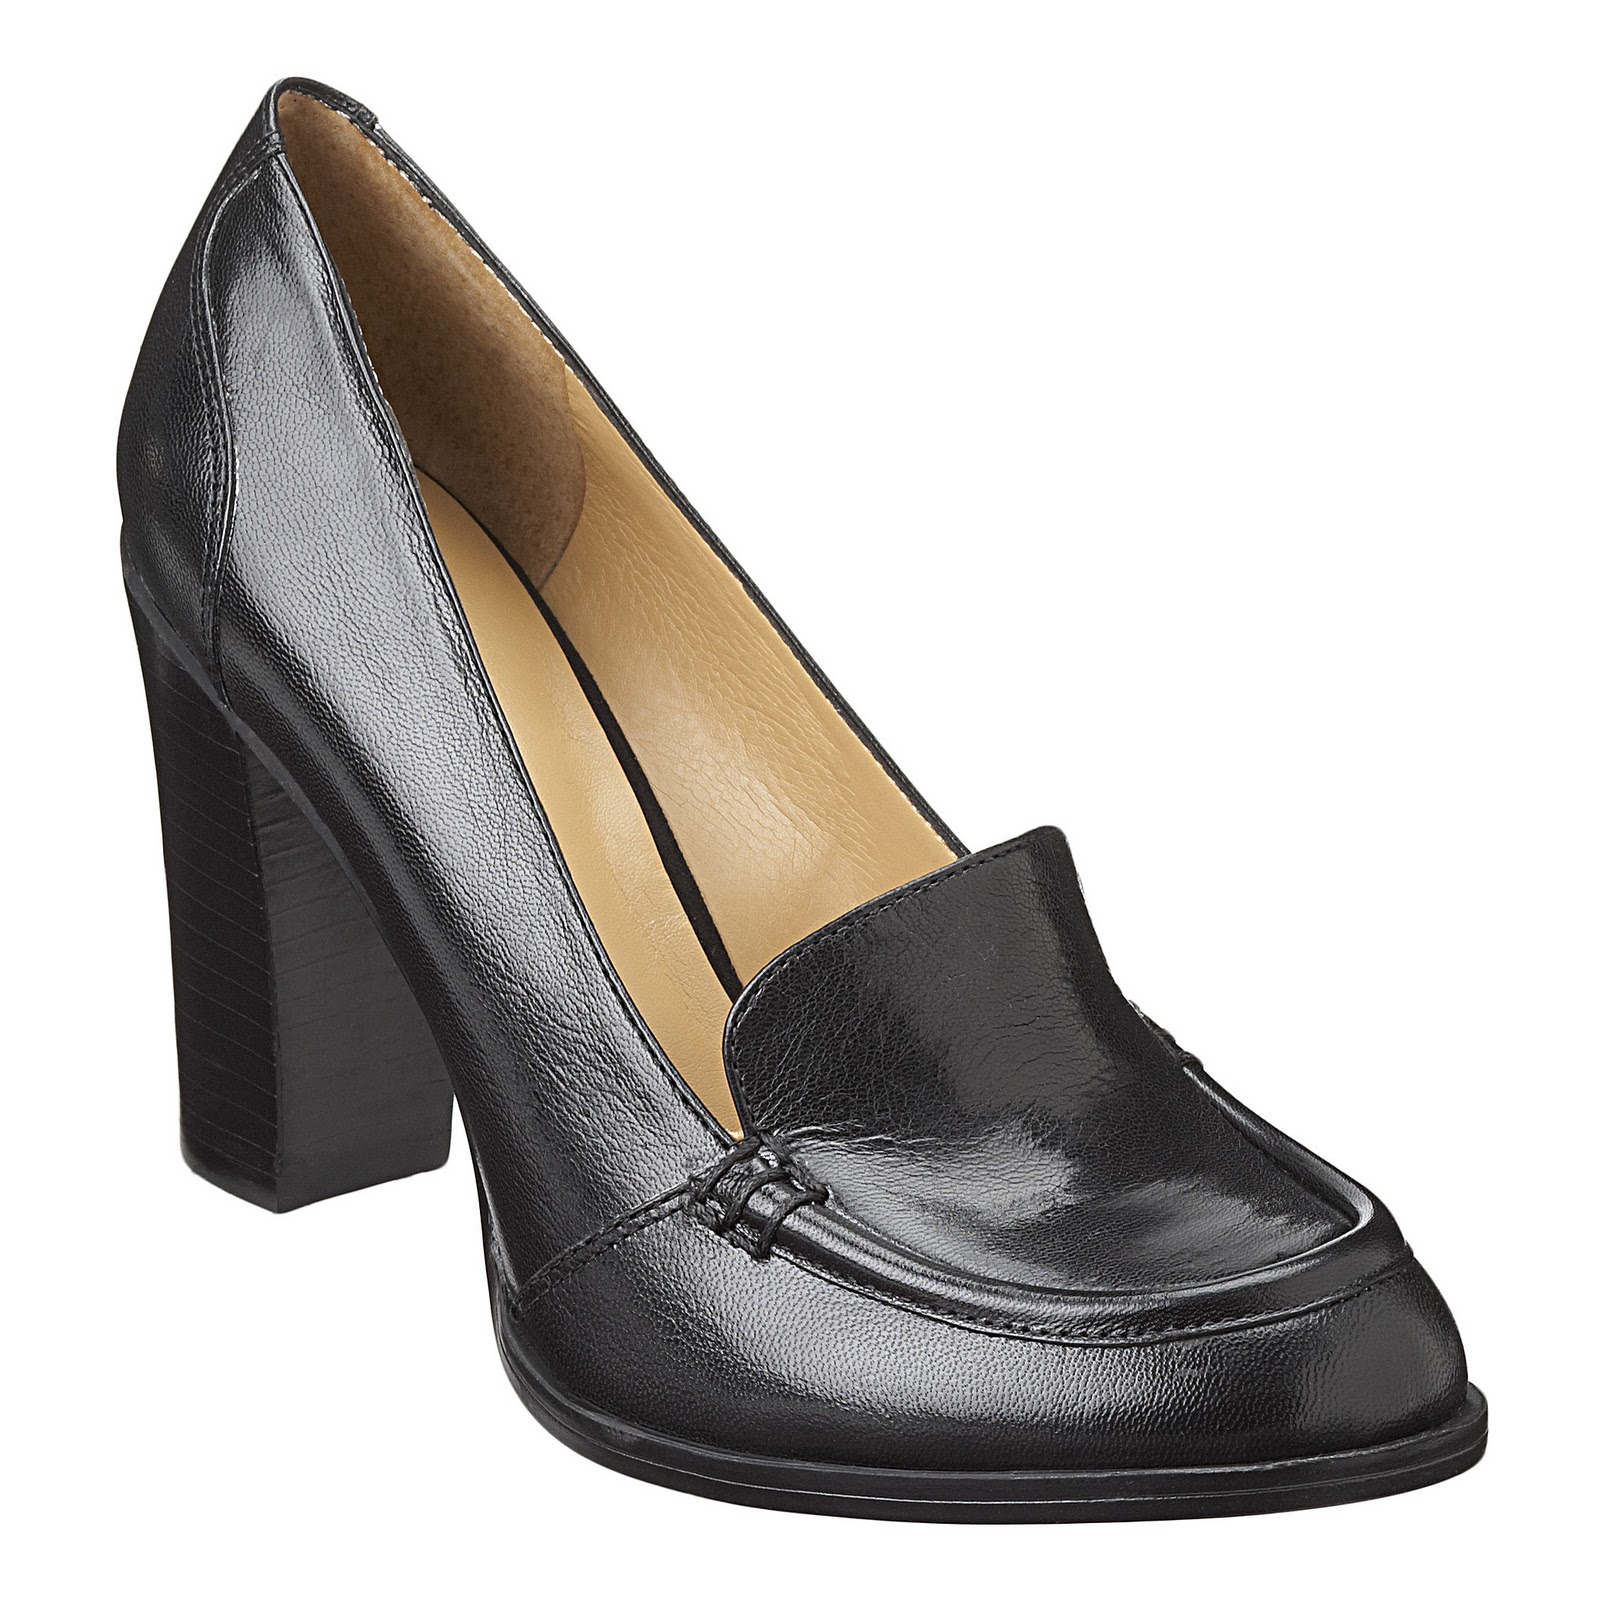 Shop a great selection of Nine West at Nordstrom Rack. Find designer Nine West up to 70% off and get free shipping on orders over $